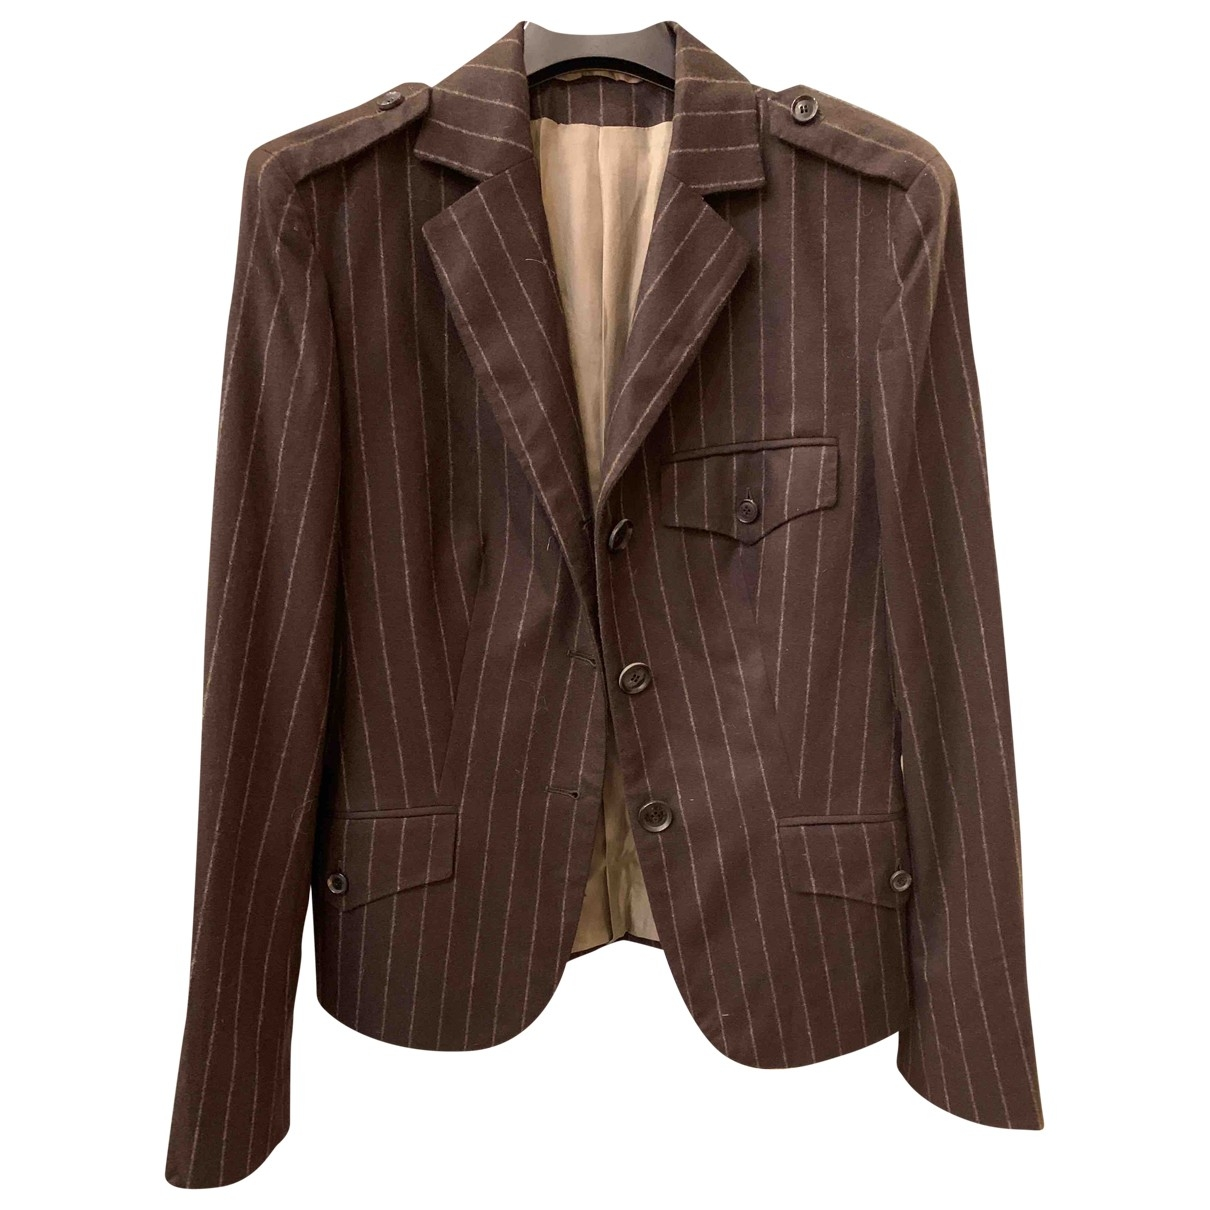 Kiton \N Brown Cashmere jacket for Women 44 IT